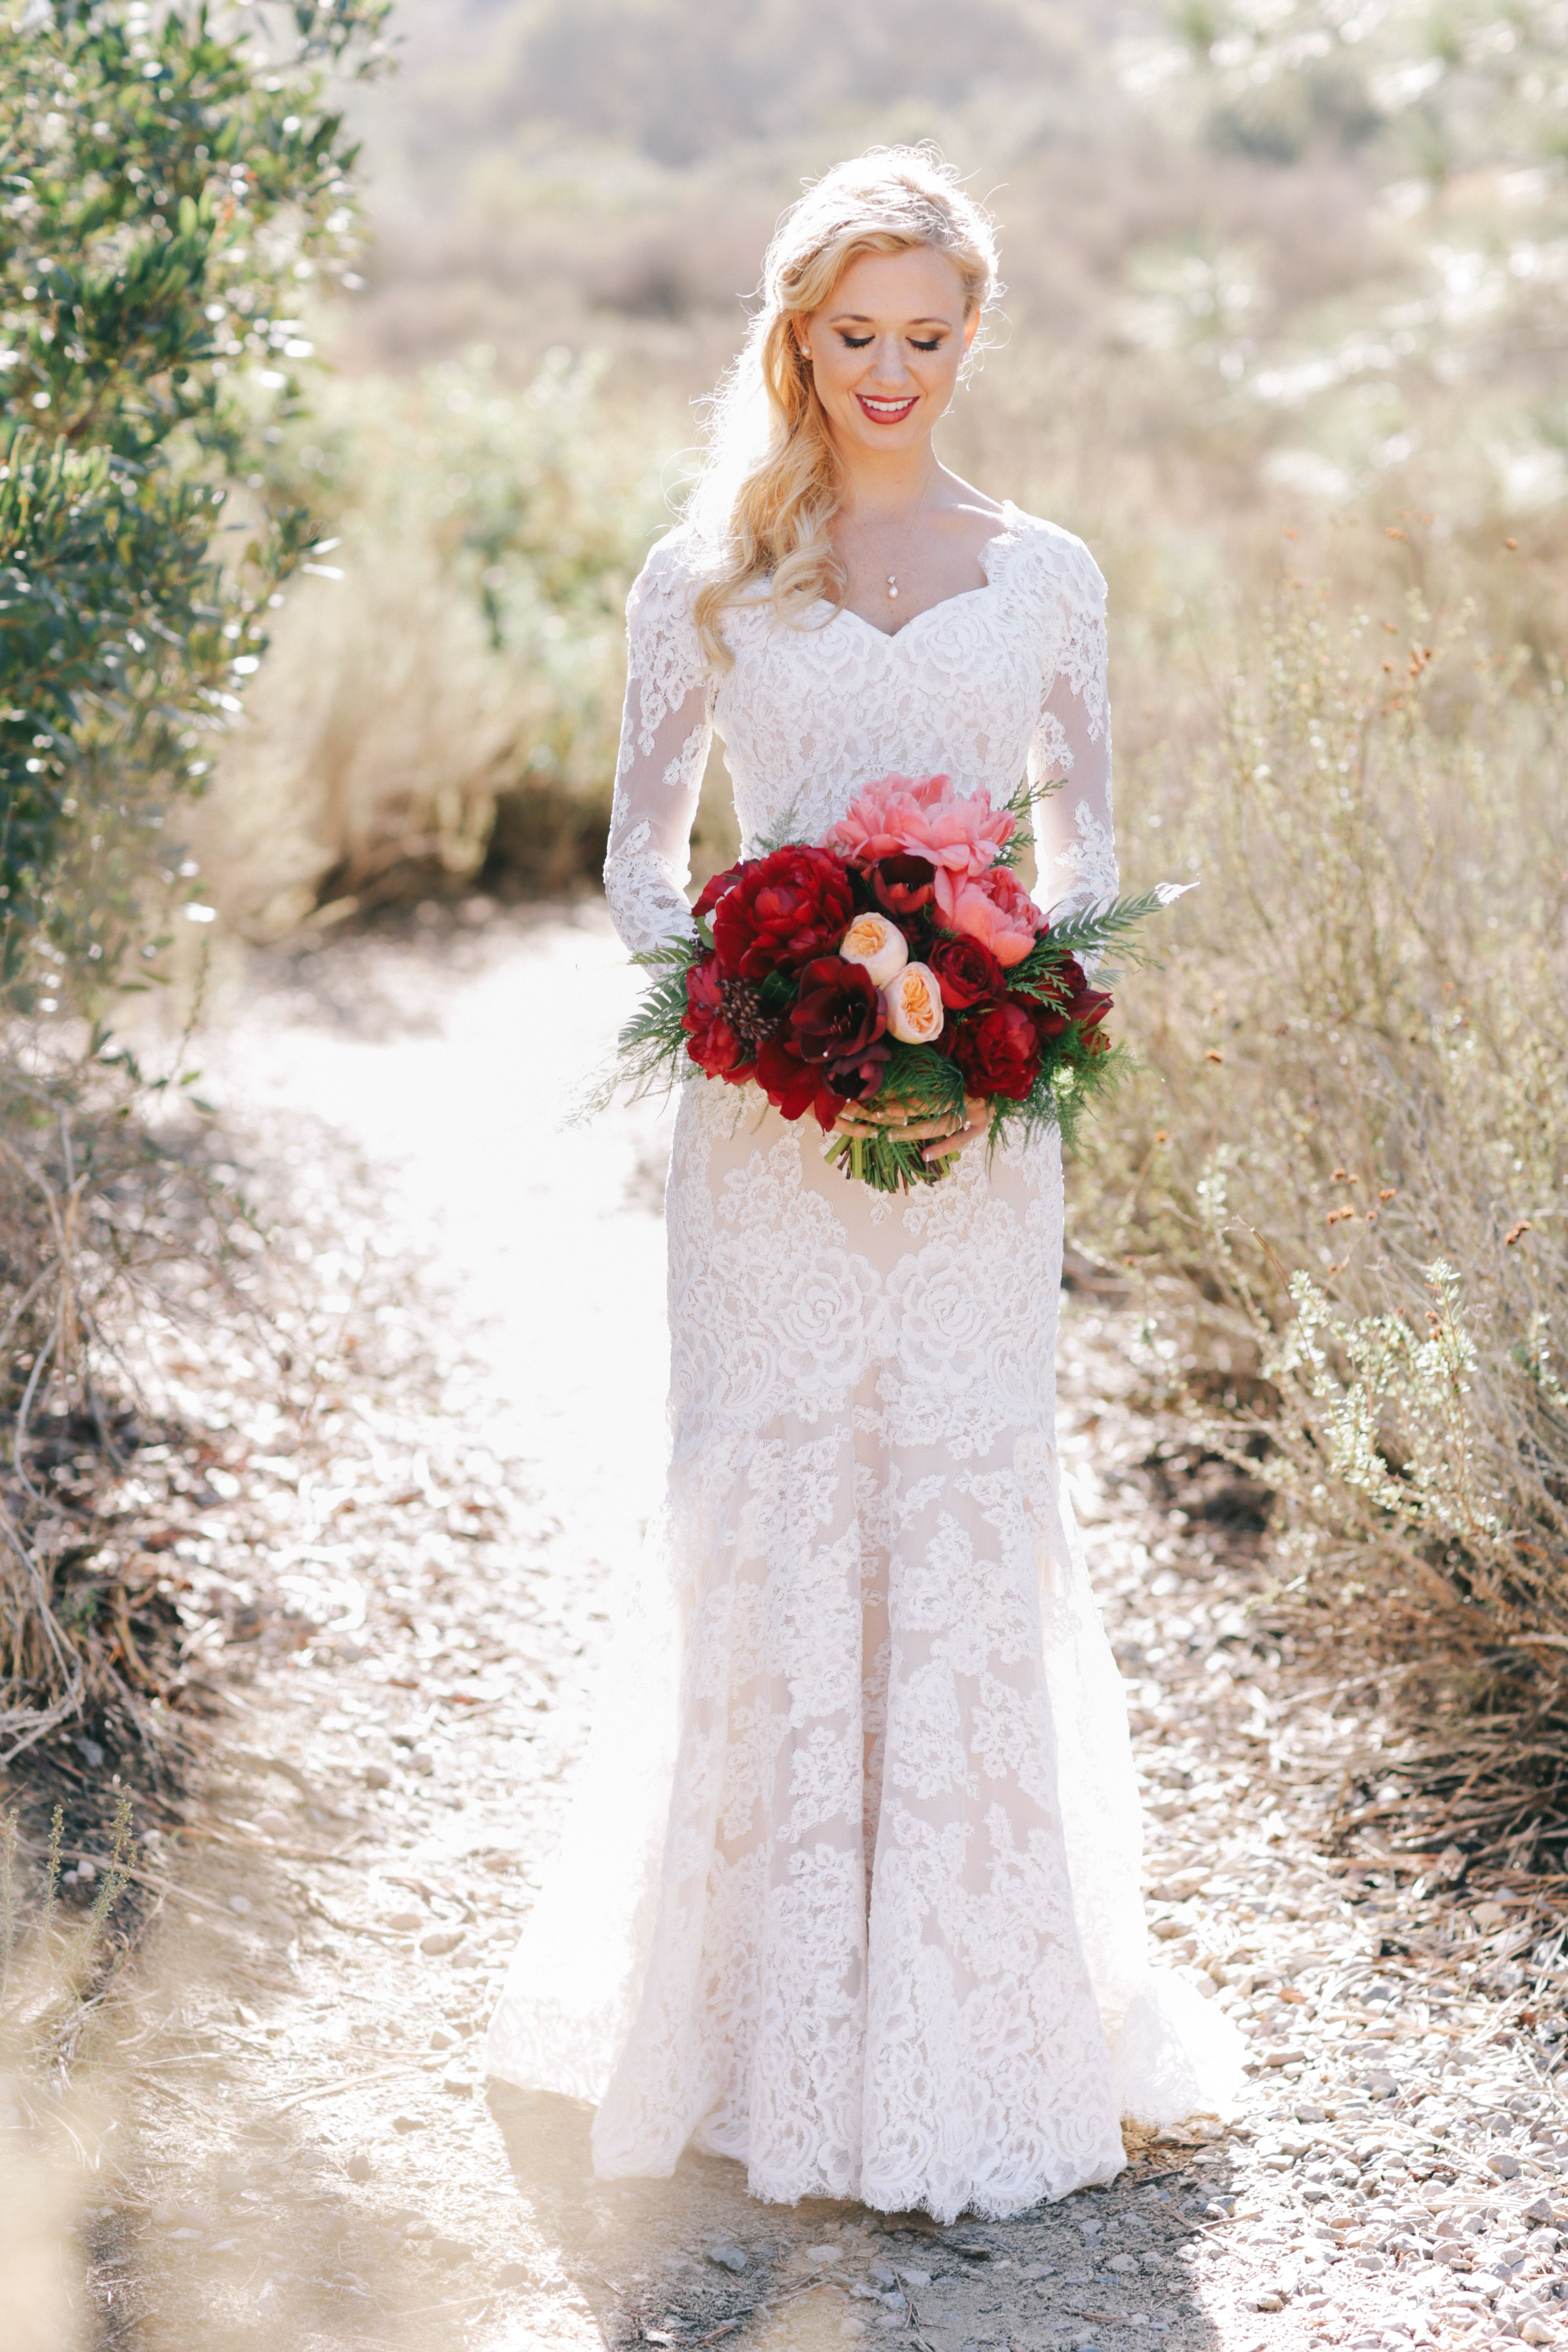 White lace sleeved anne barge wedding gown wedding dress lace bridal dress with long sleevessheath wedding dresscustom made prom dressjd 51 from june bridal ombrellifo Images